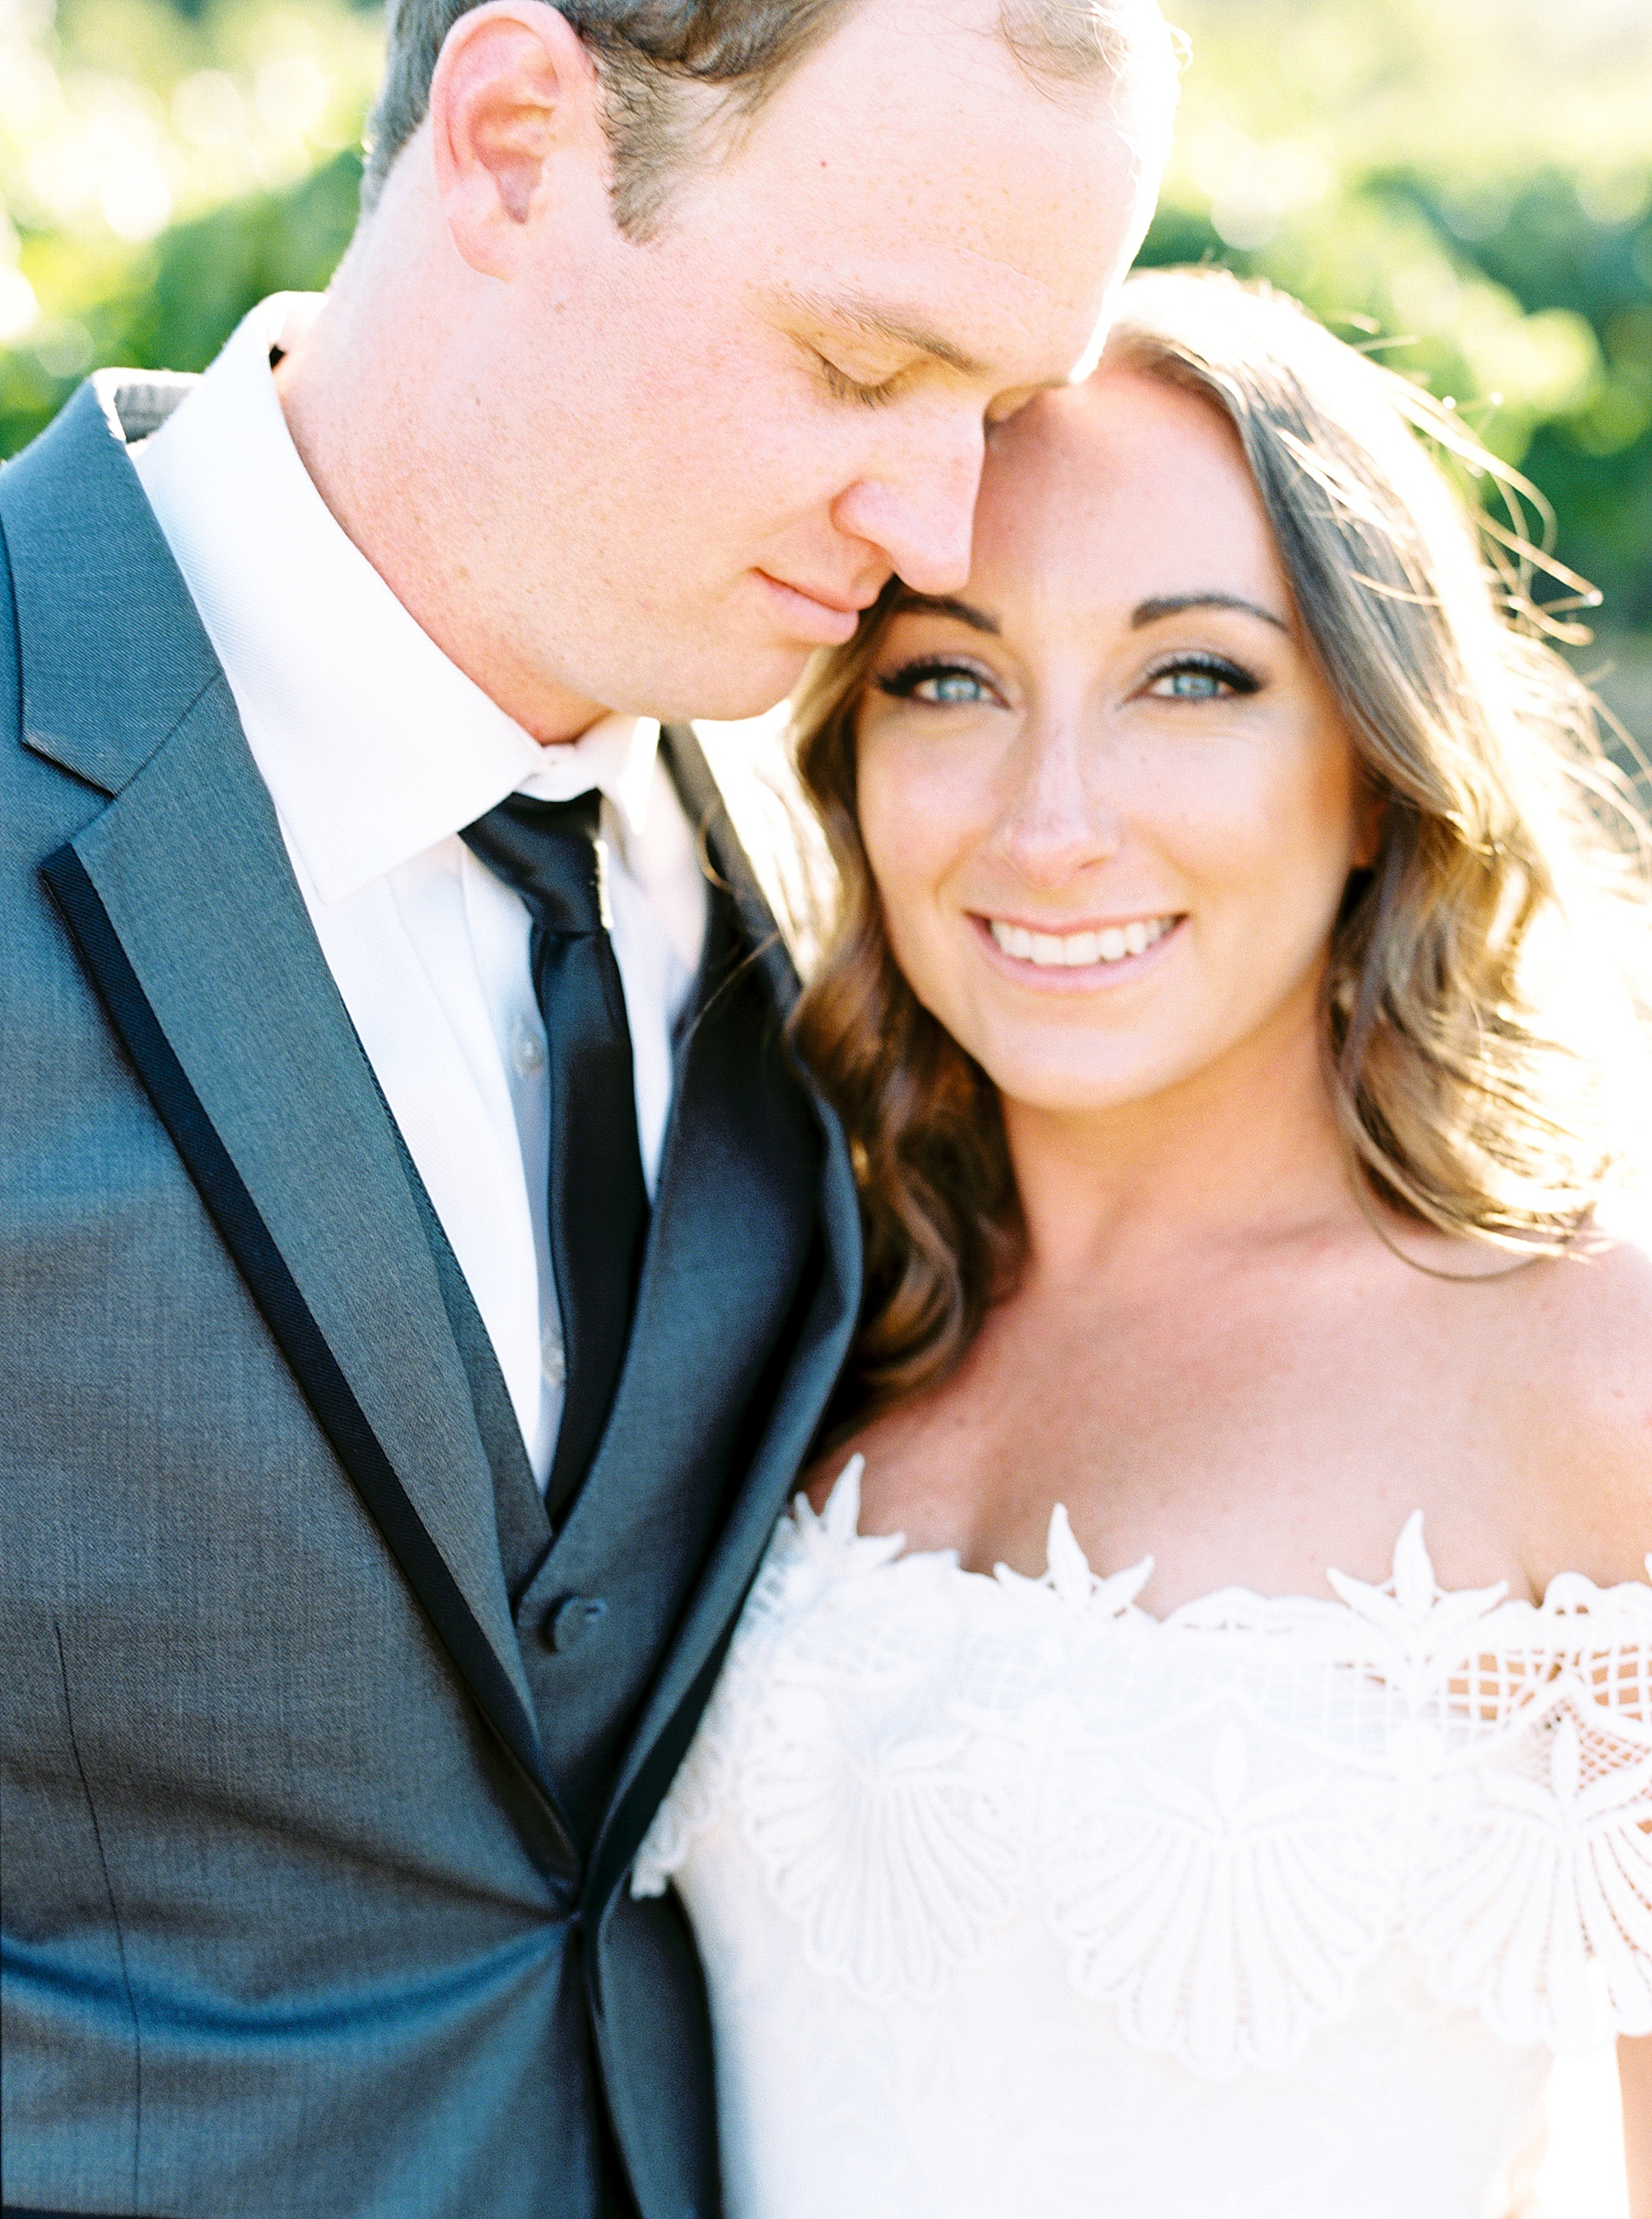 Wente Wedding with A Tropical Color Palette - Ashley & Mike - Featured on Inspired by This - Ashley Baumgartner_0046.jpg